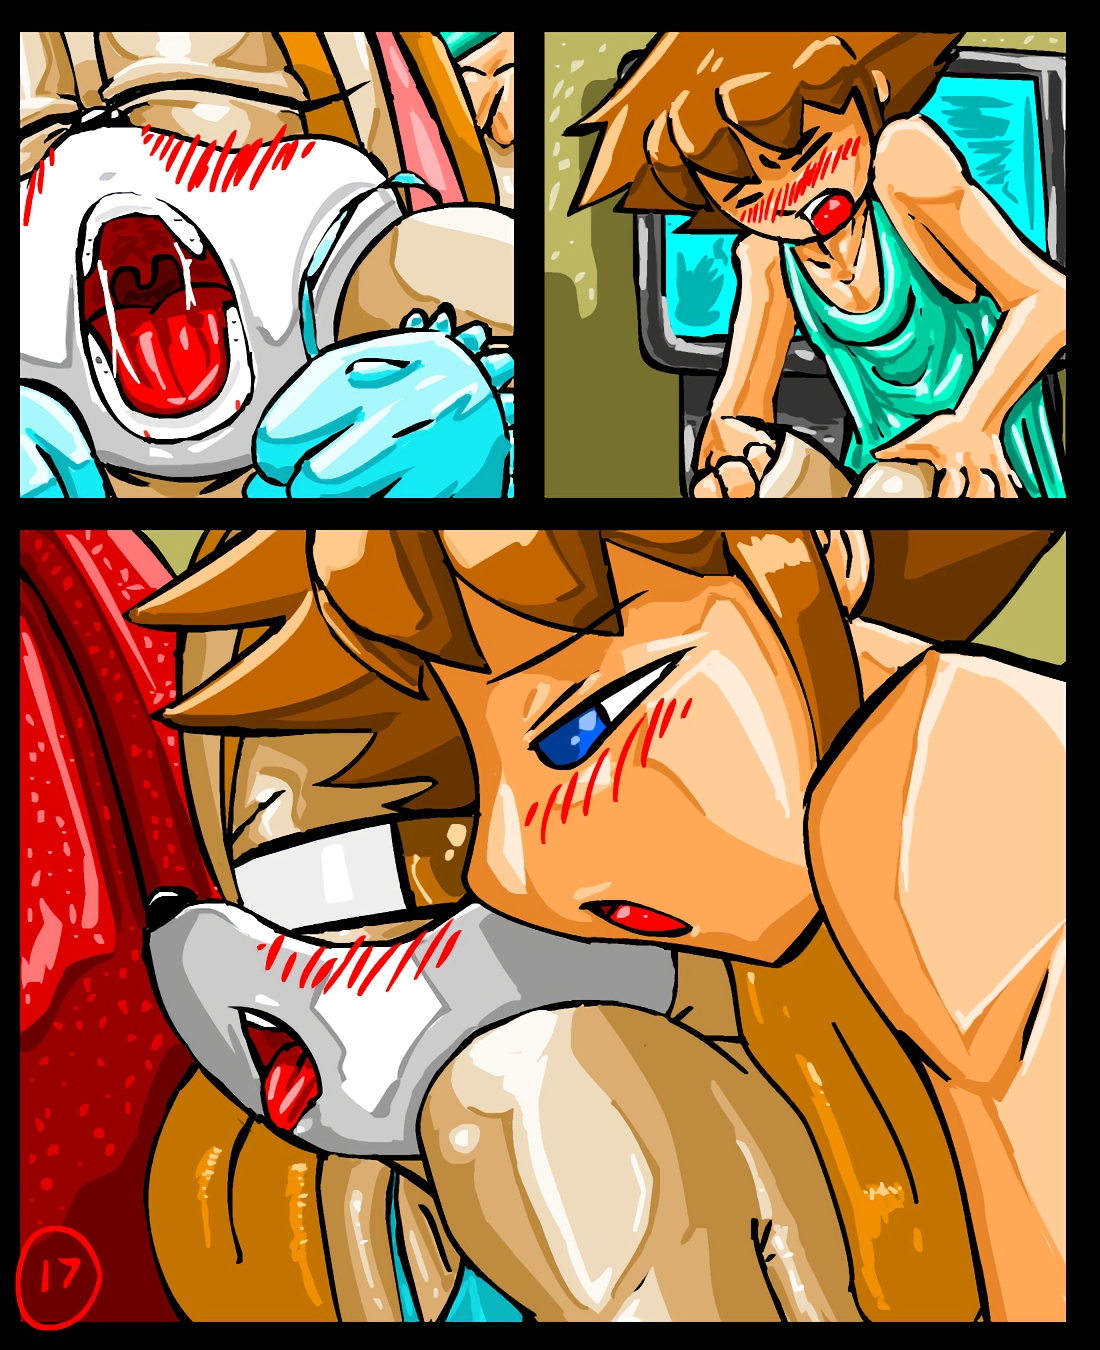 Can't Sleep porn comics Oral sex, Lolicon